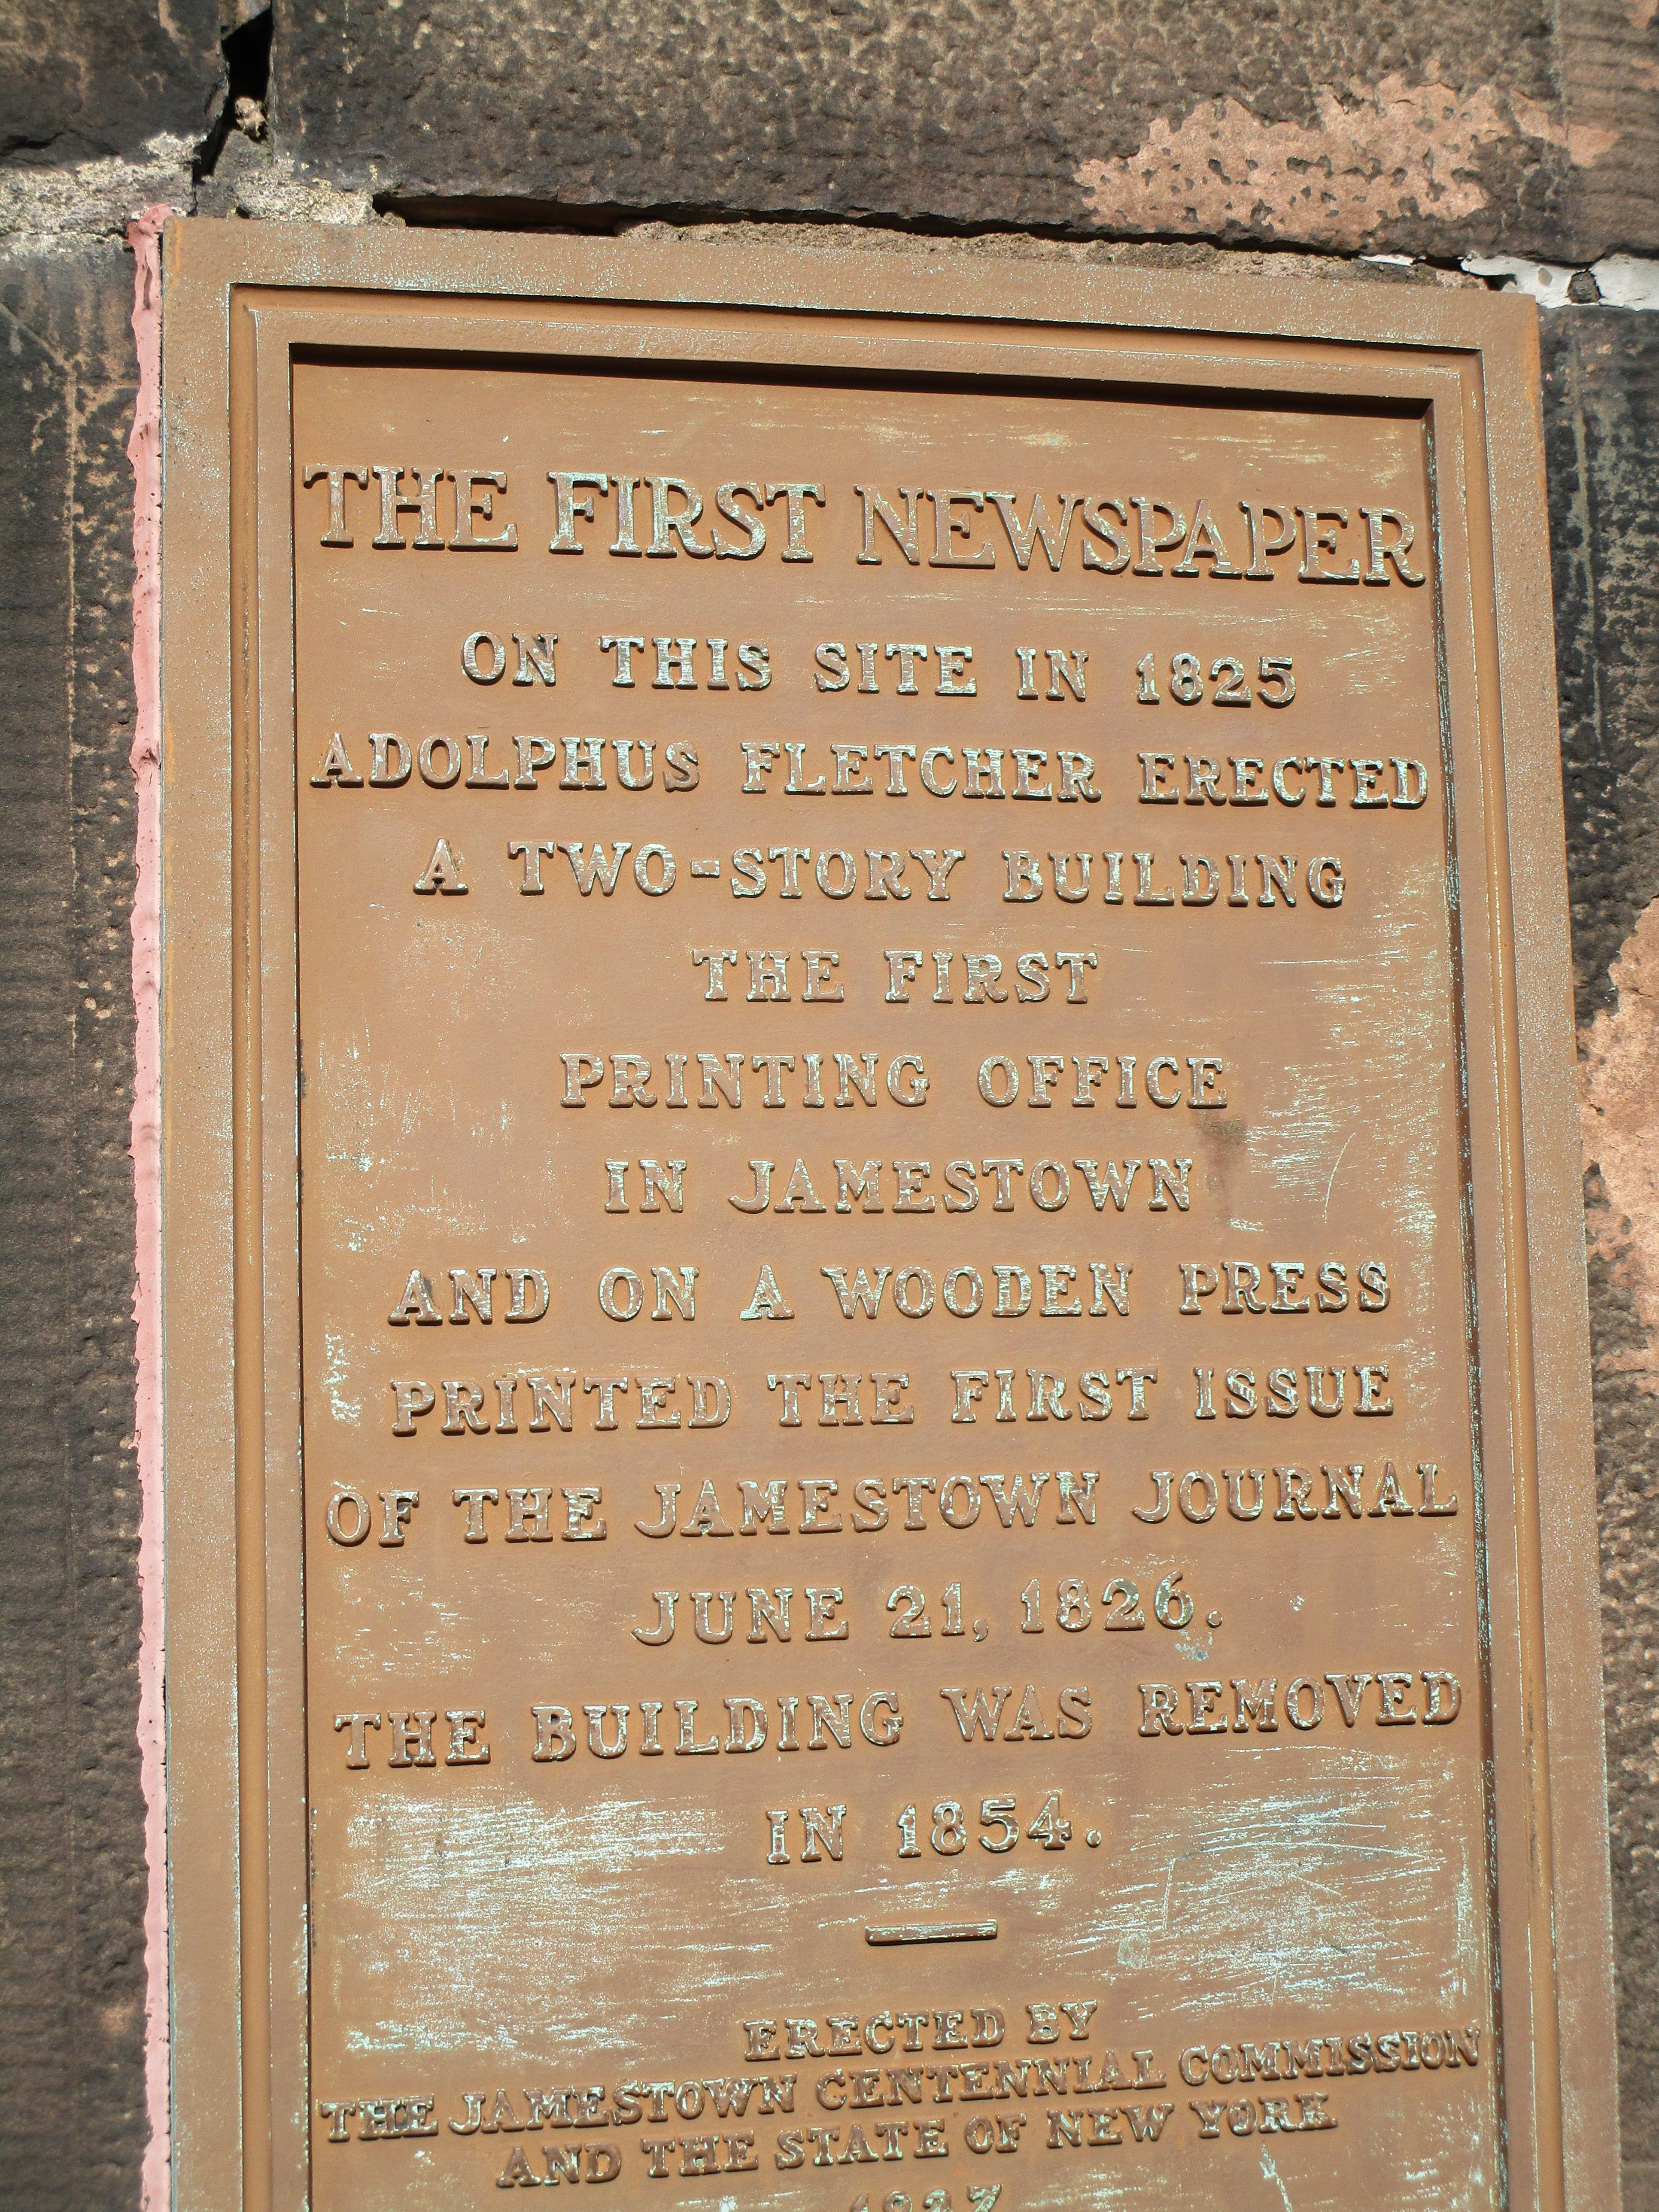 The First Newspaper Marker